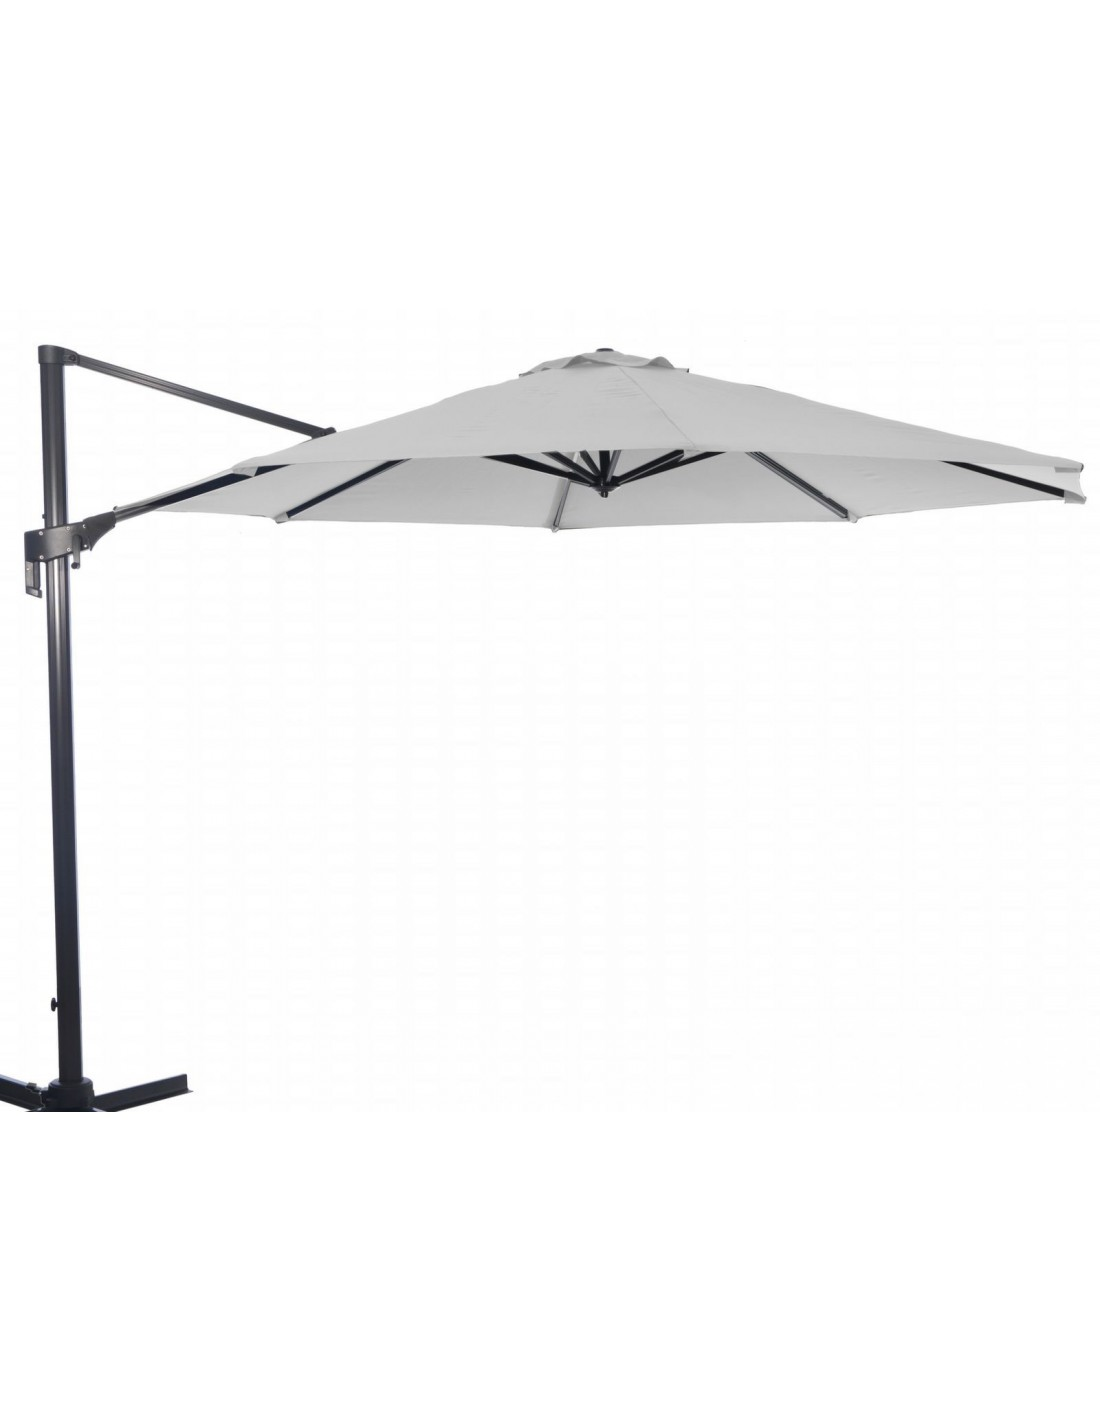 Parasol dport orientable et inclinable awesome parasol - Parasol rectangulaire inclinable castorama ...